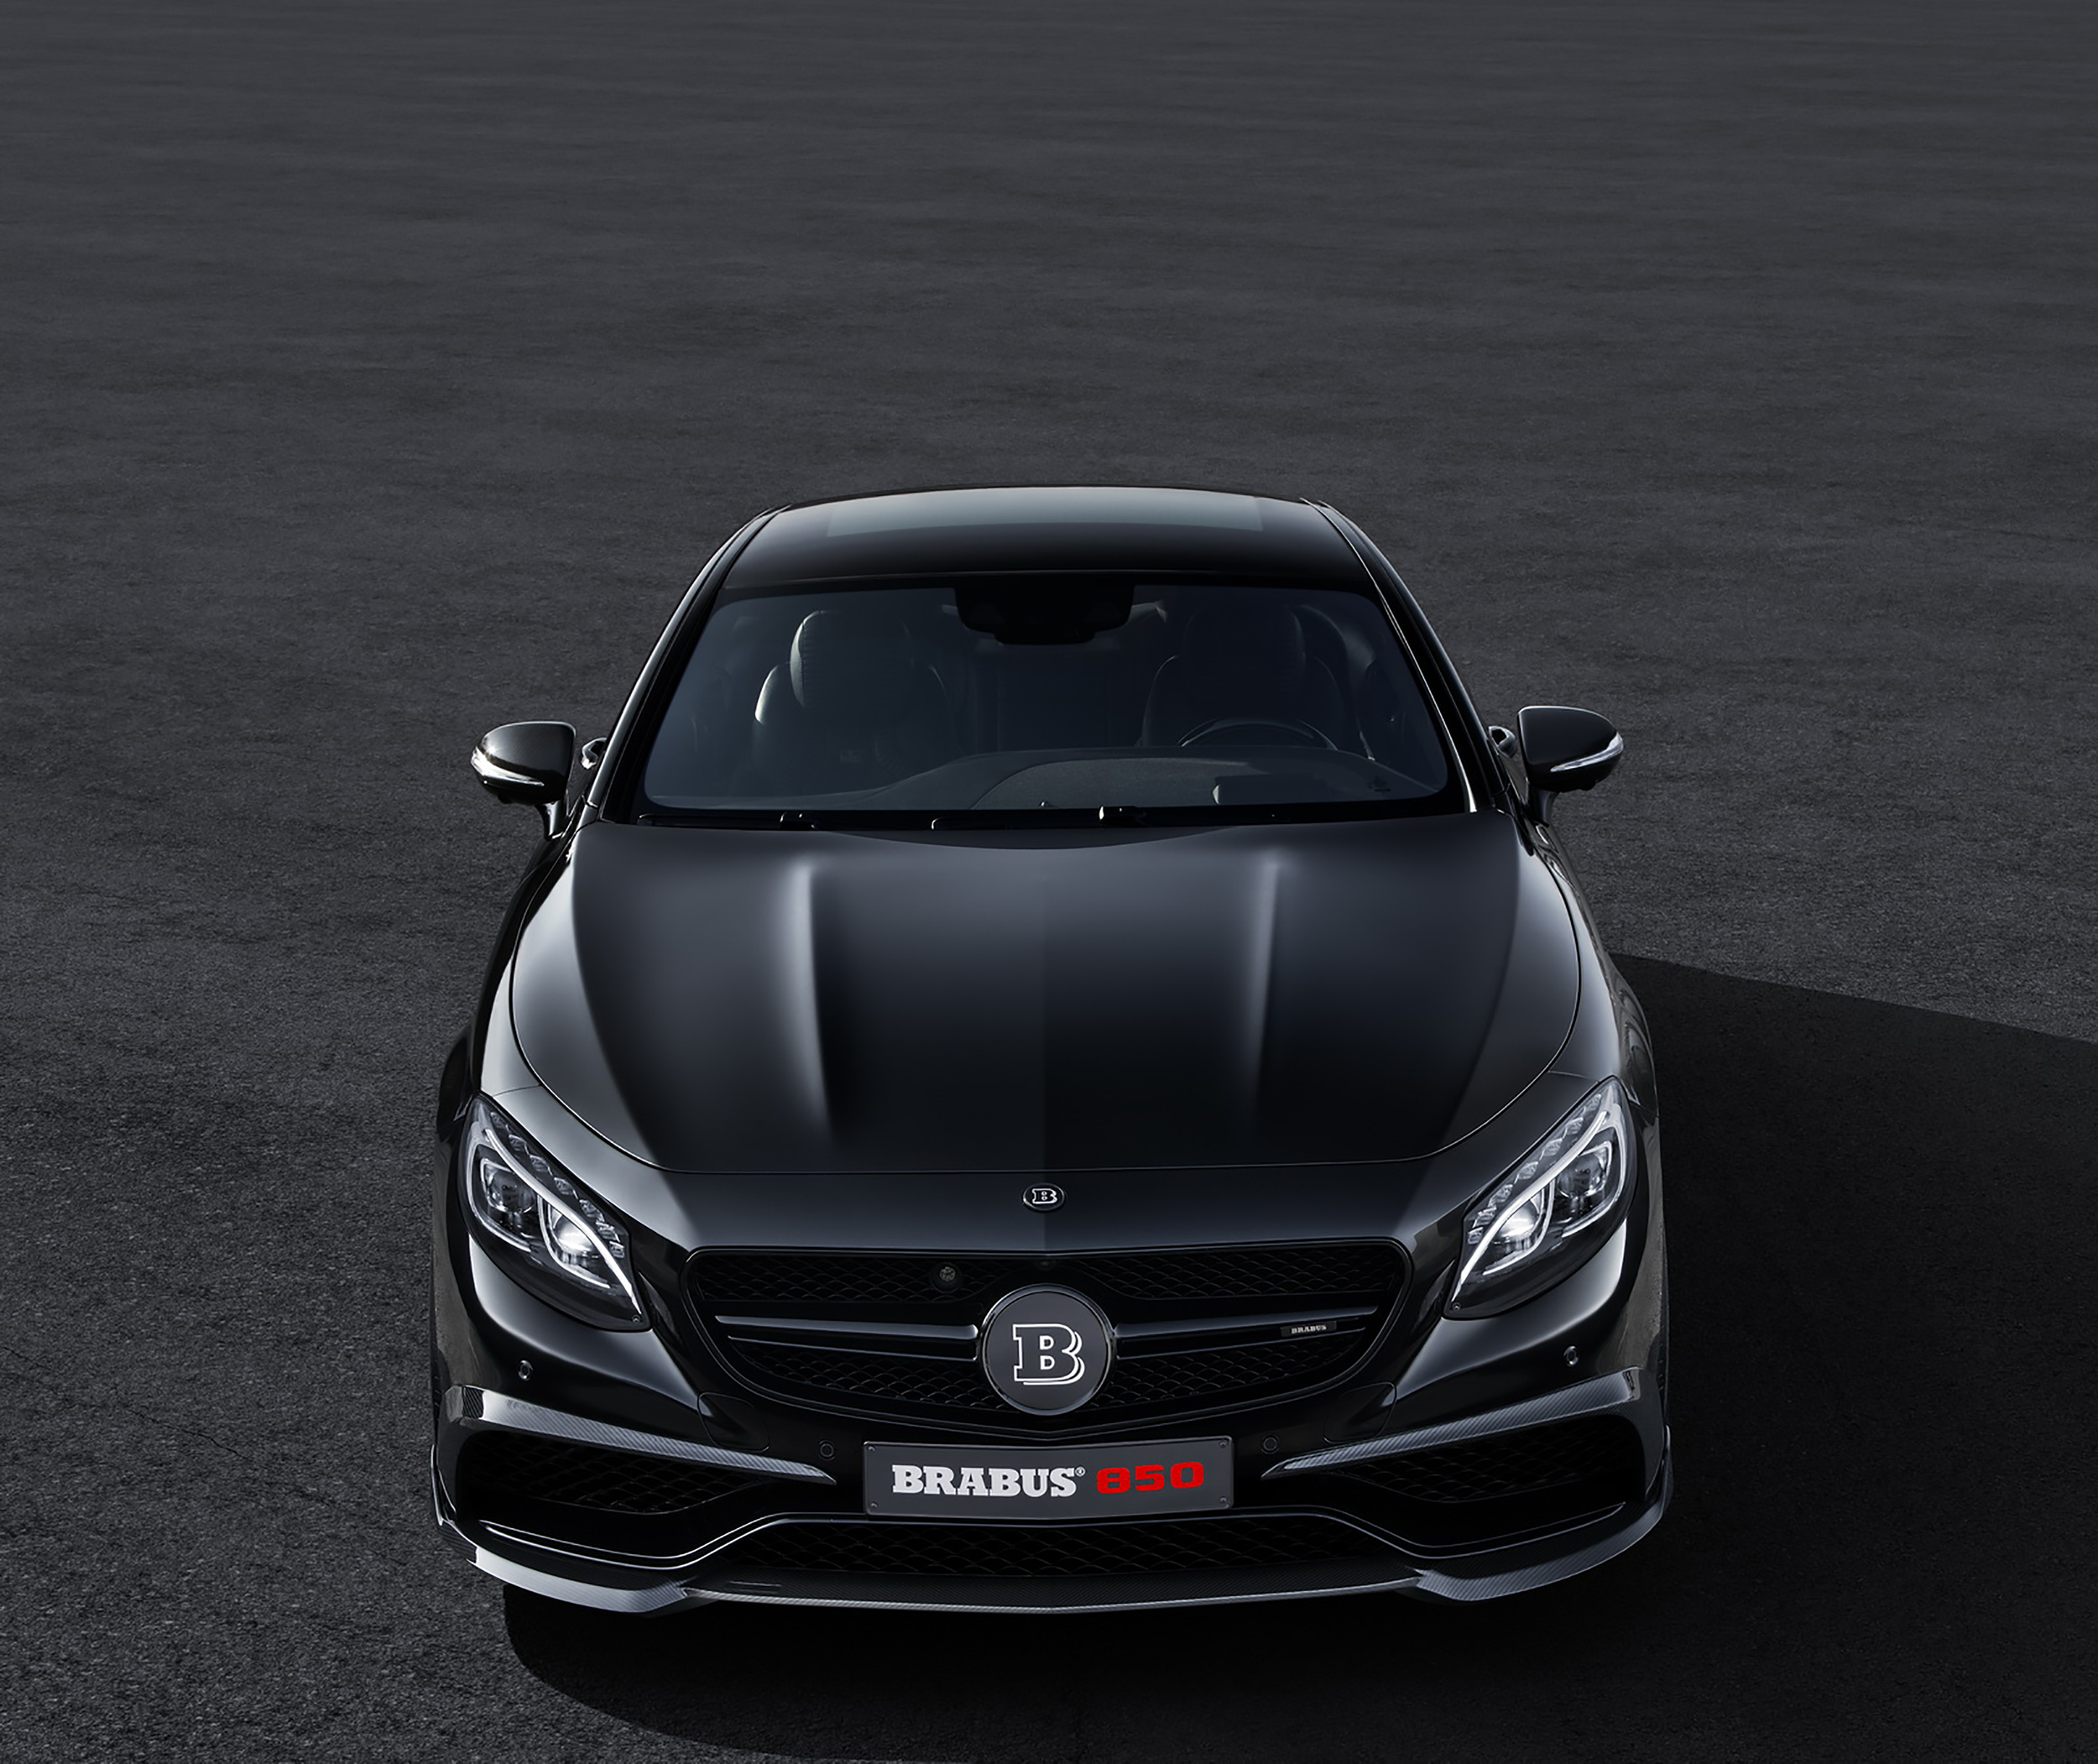 ' ' from the web at 'http://www.blogcdn.com/slideshows/images/slides/335/947/7/S3359477/slug/l/brabus-s-class-coupe-10-1.jpg'